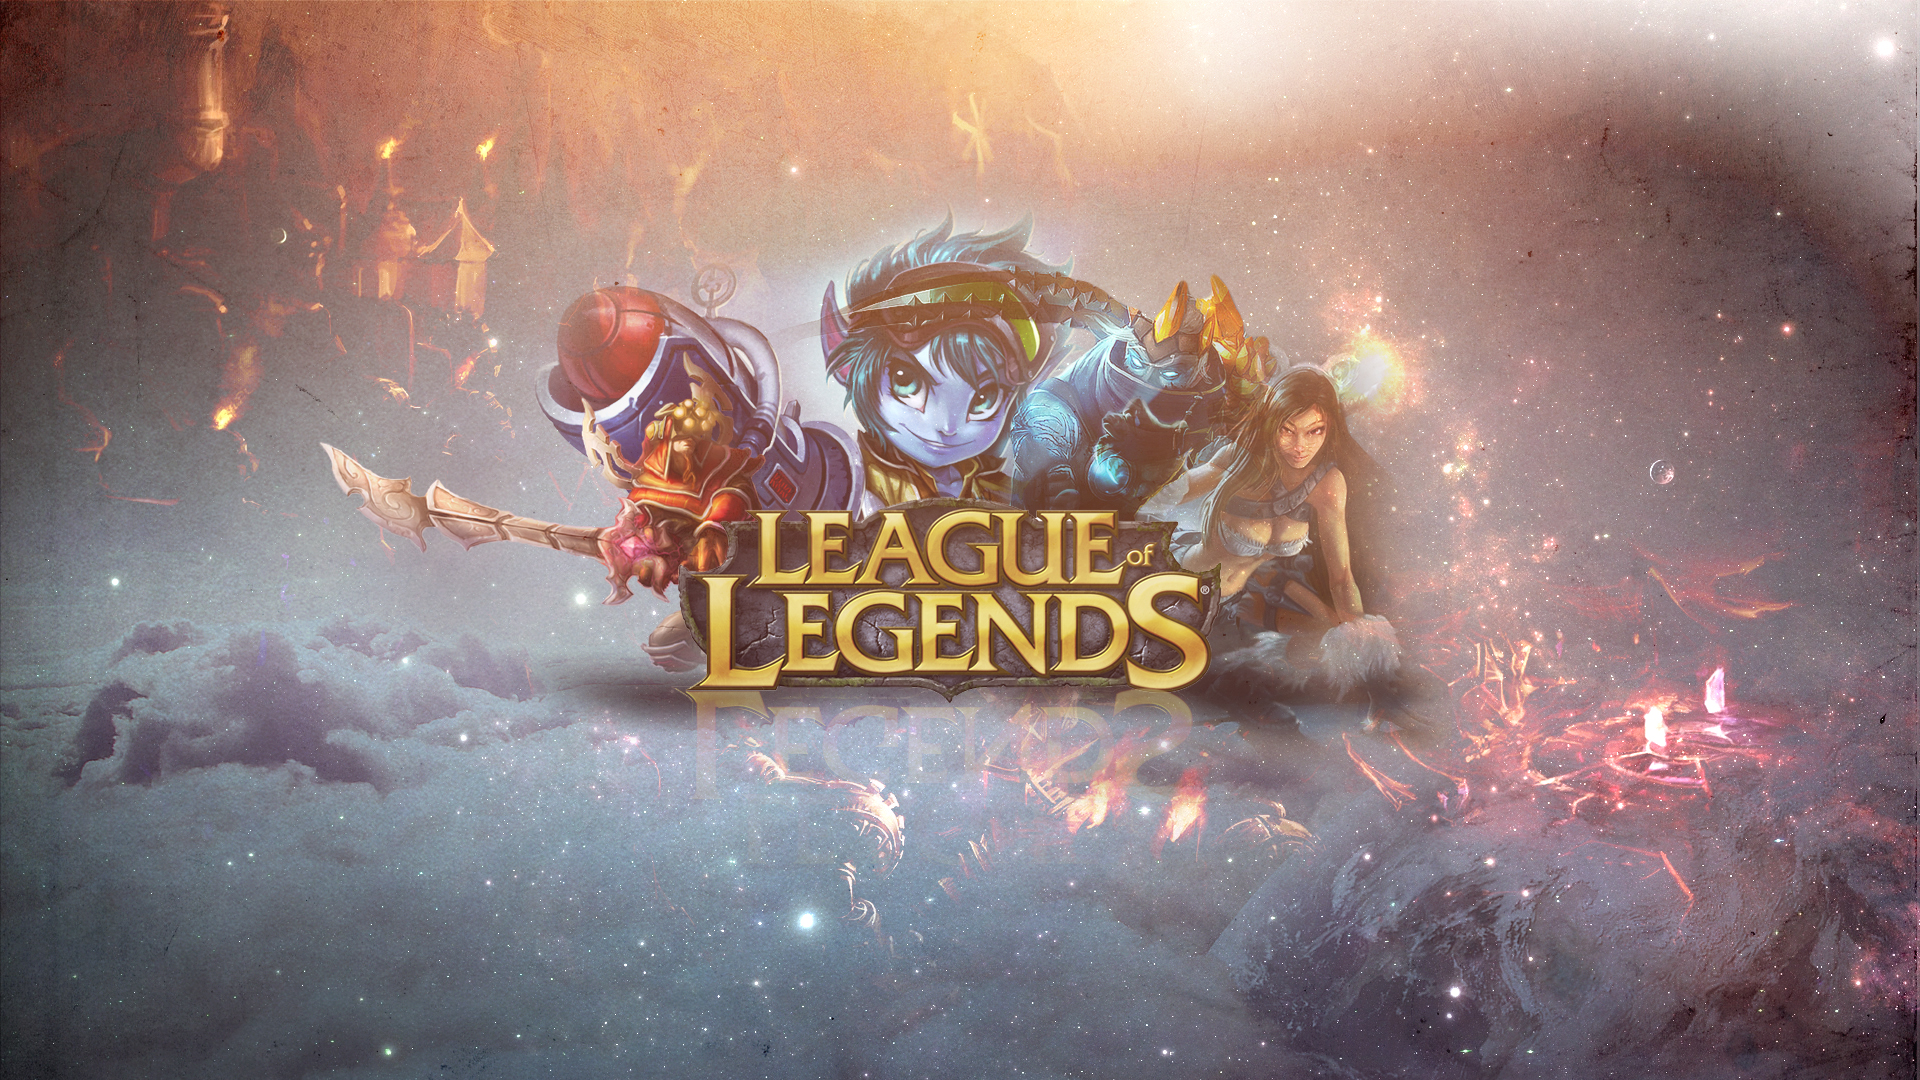 League of legends wallpaper by respawn16 on deviantart league of legends wallpaper by respawn16 league of legends wallpaper by respawn16 voltagebd Image collections